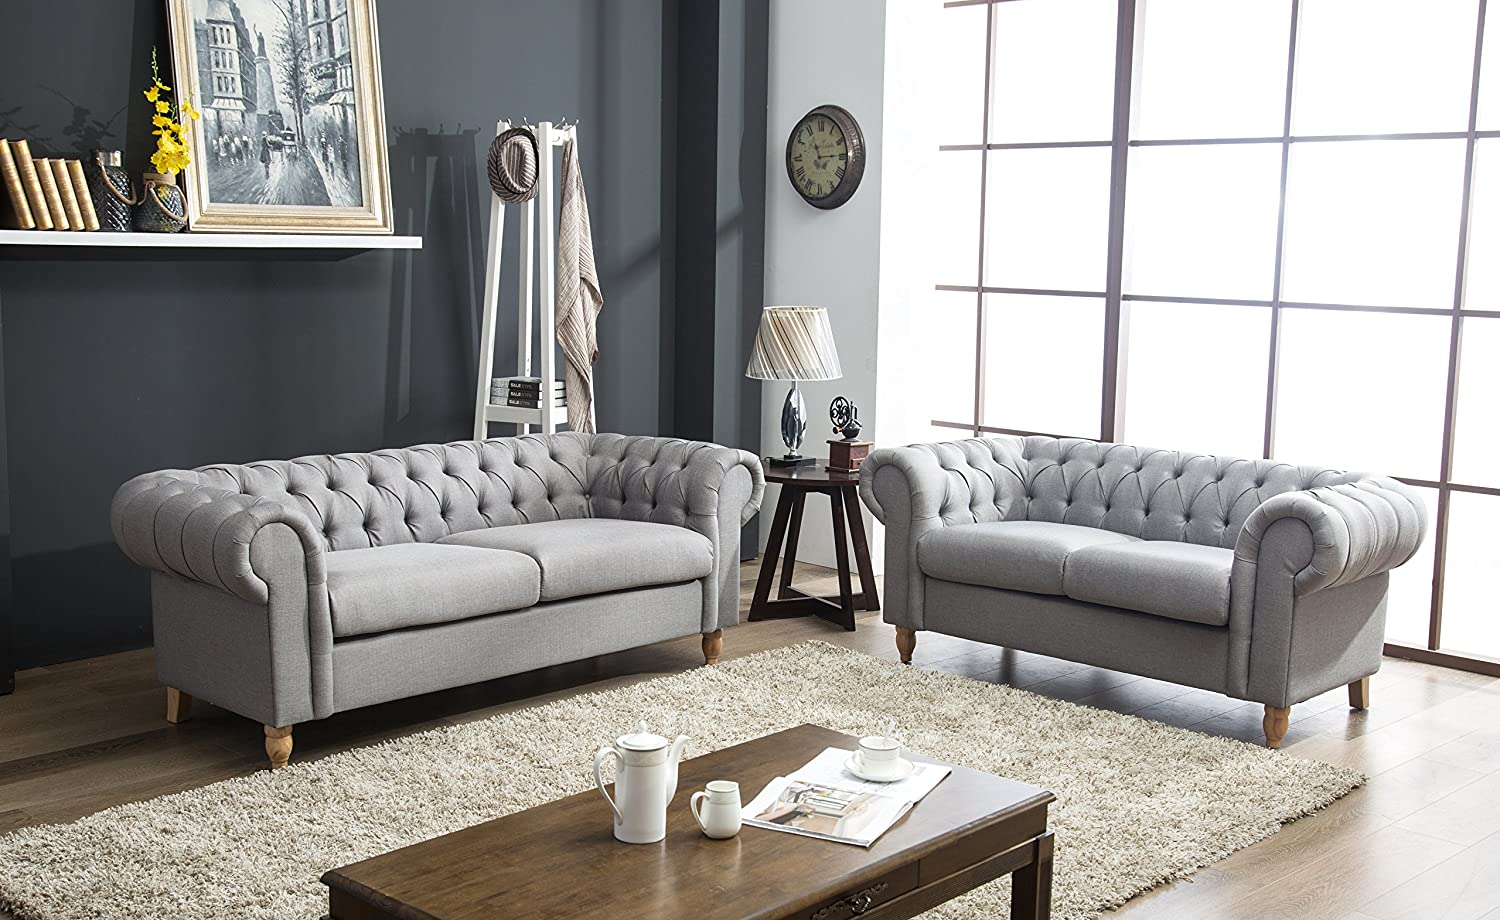 Canterbury Chesterfield Sofa 2 3 Seater Suite in Silver Grey Crushed Velvet  or Grey Linen Fabric With Real Wood Queen Anne Style Legs Feet (Grey ...